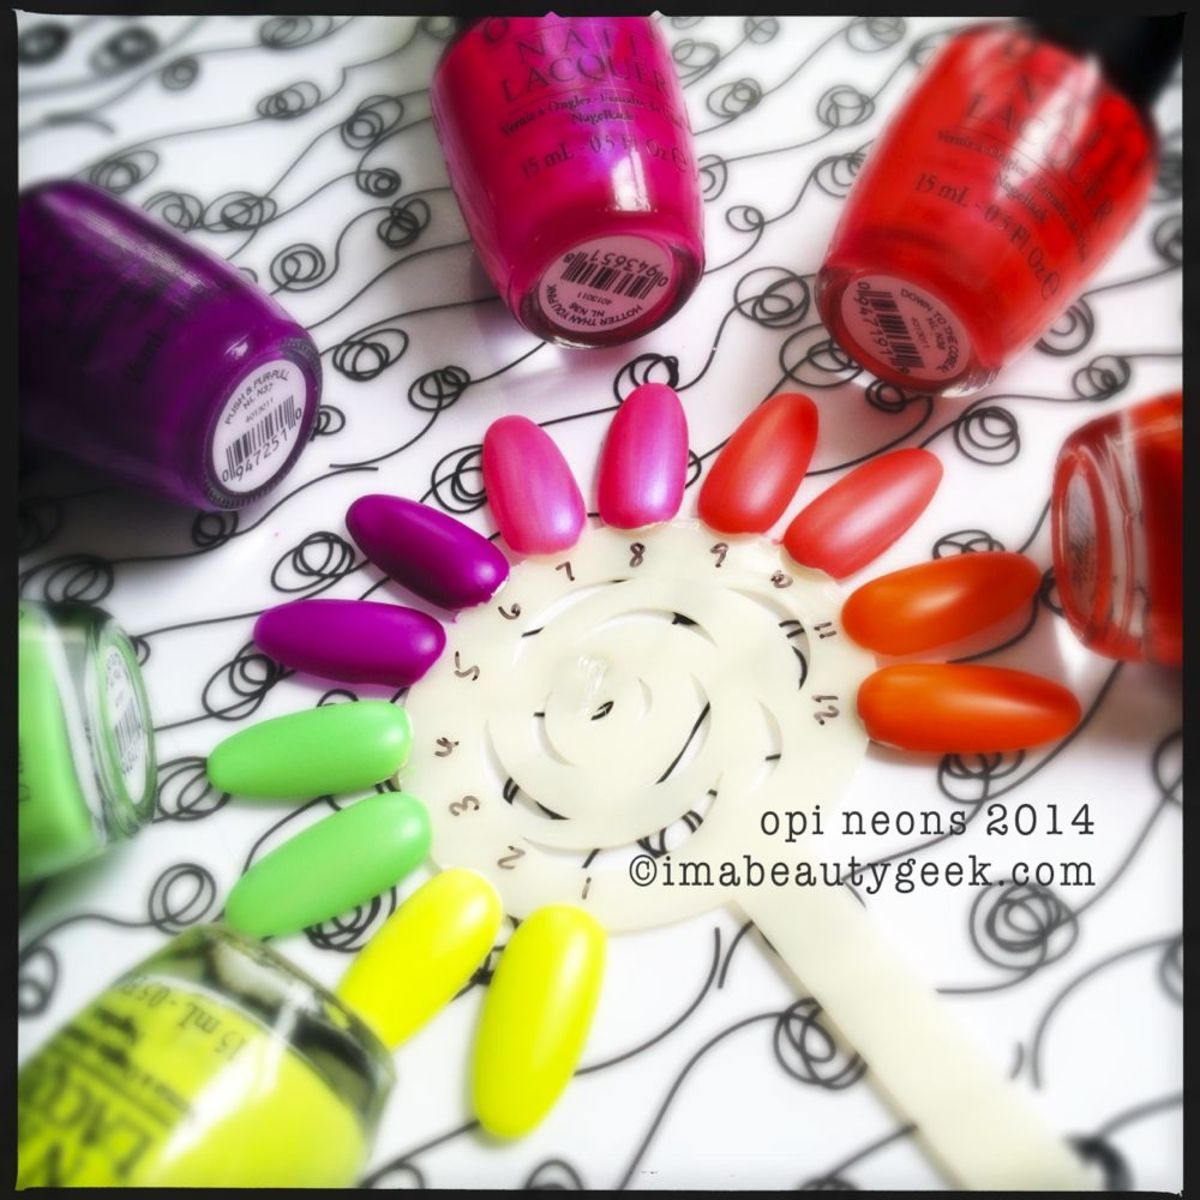 OPI Neons 2014 Permanent Collection